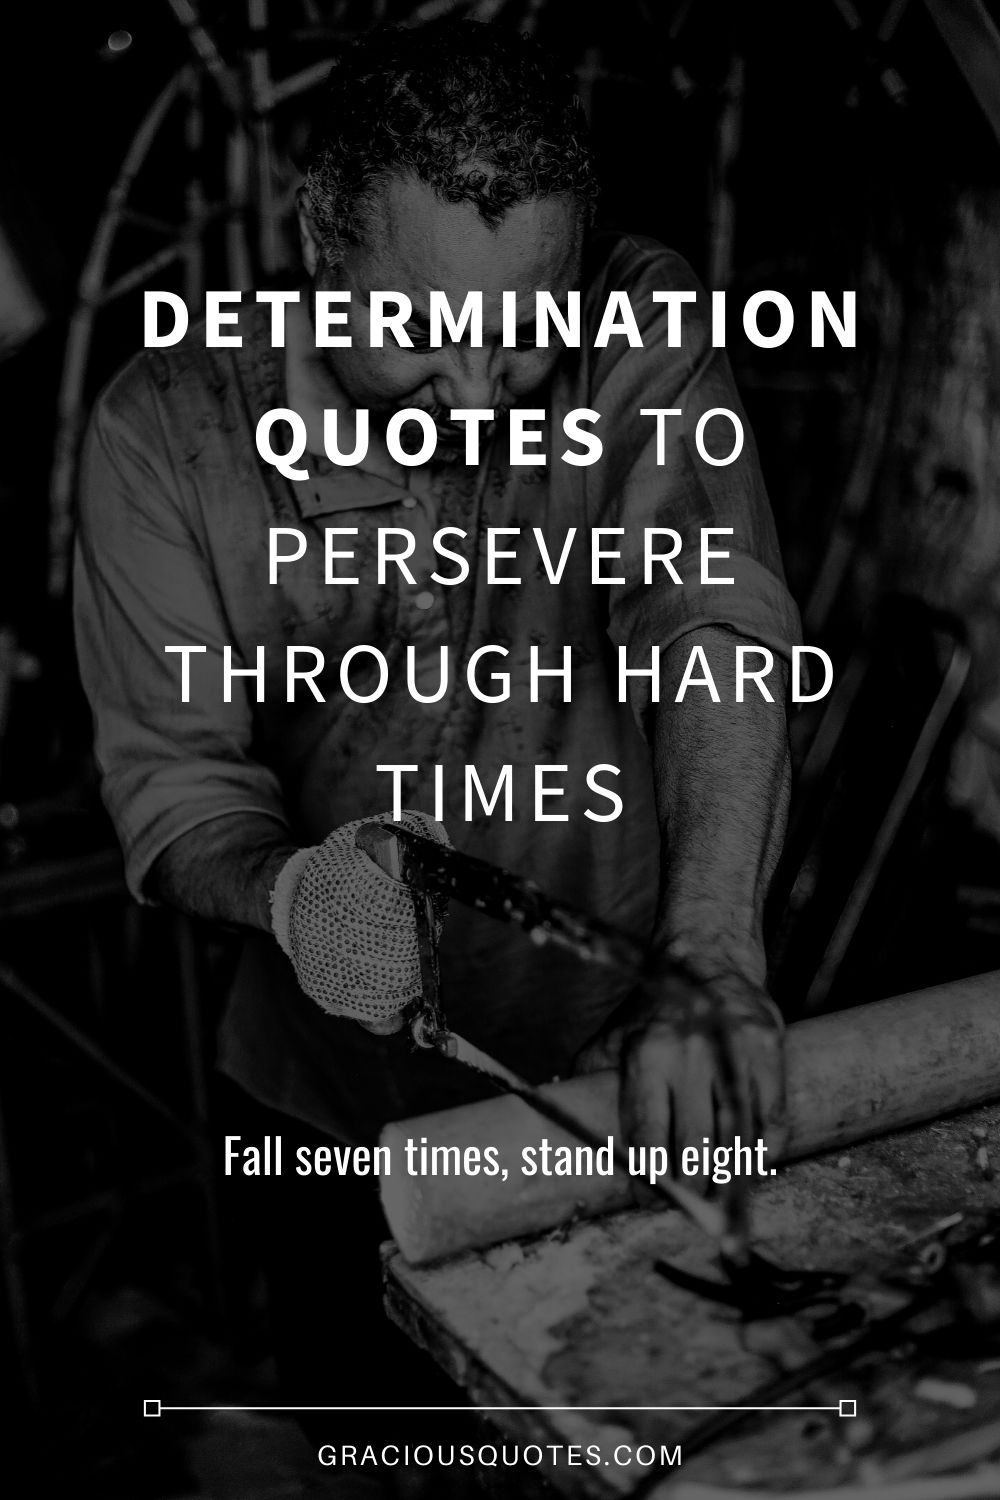 Determination-Quotes-to-Persevere-Through-Hard-Times-Gracious-Quotes